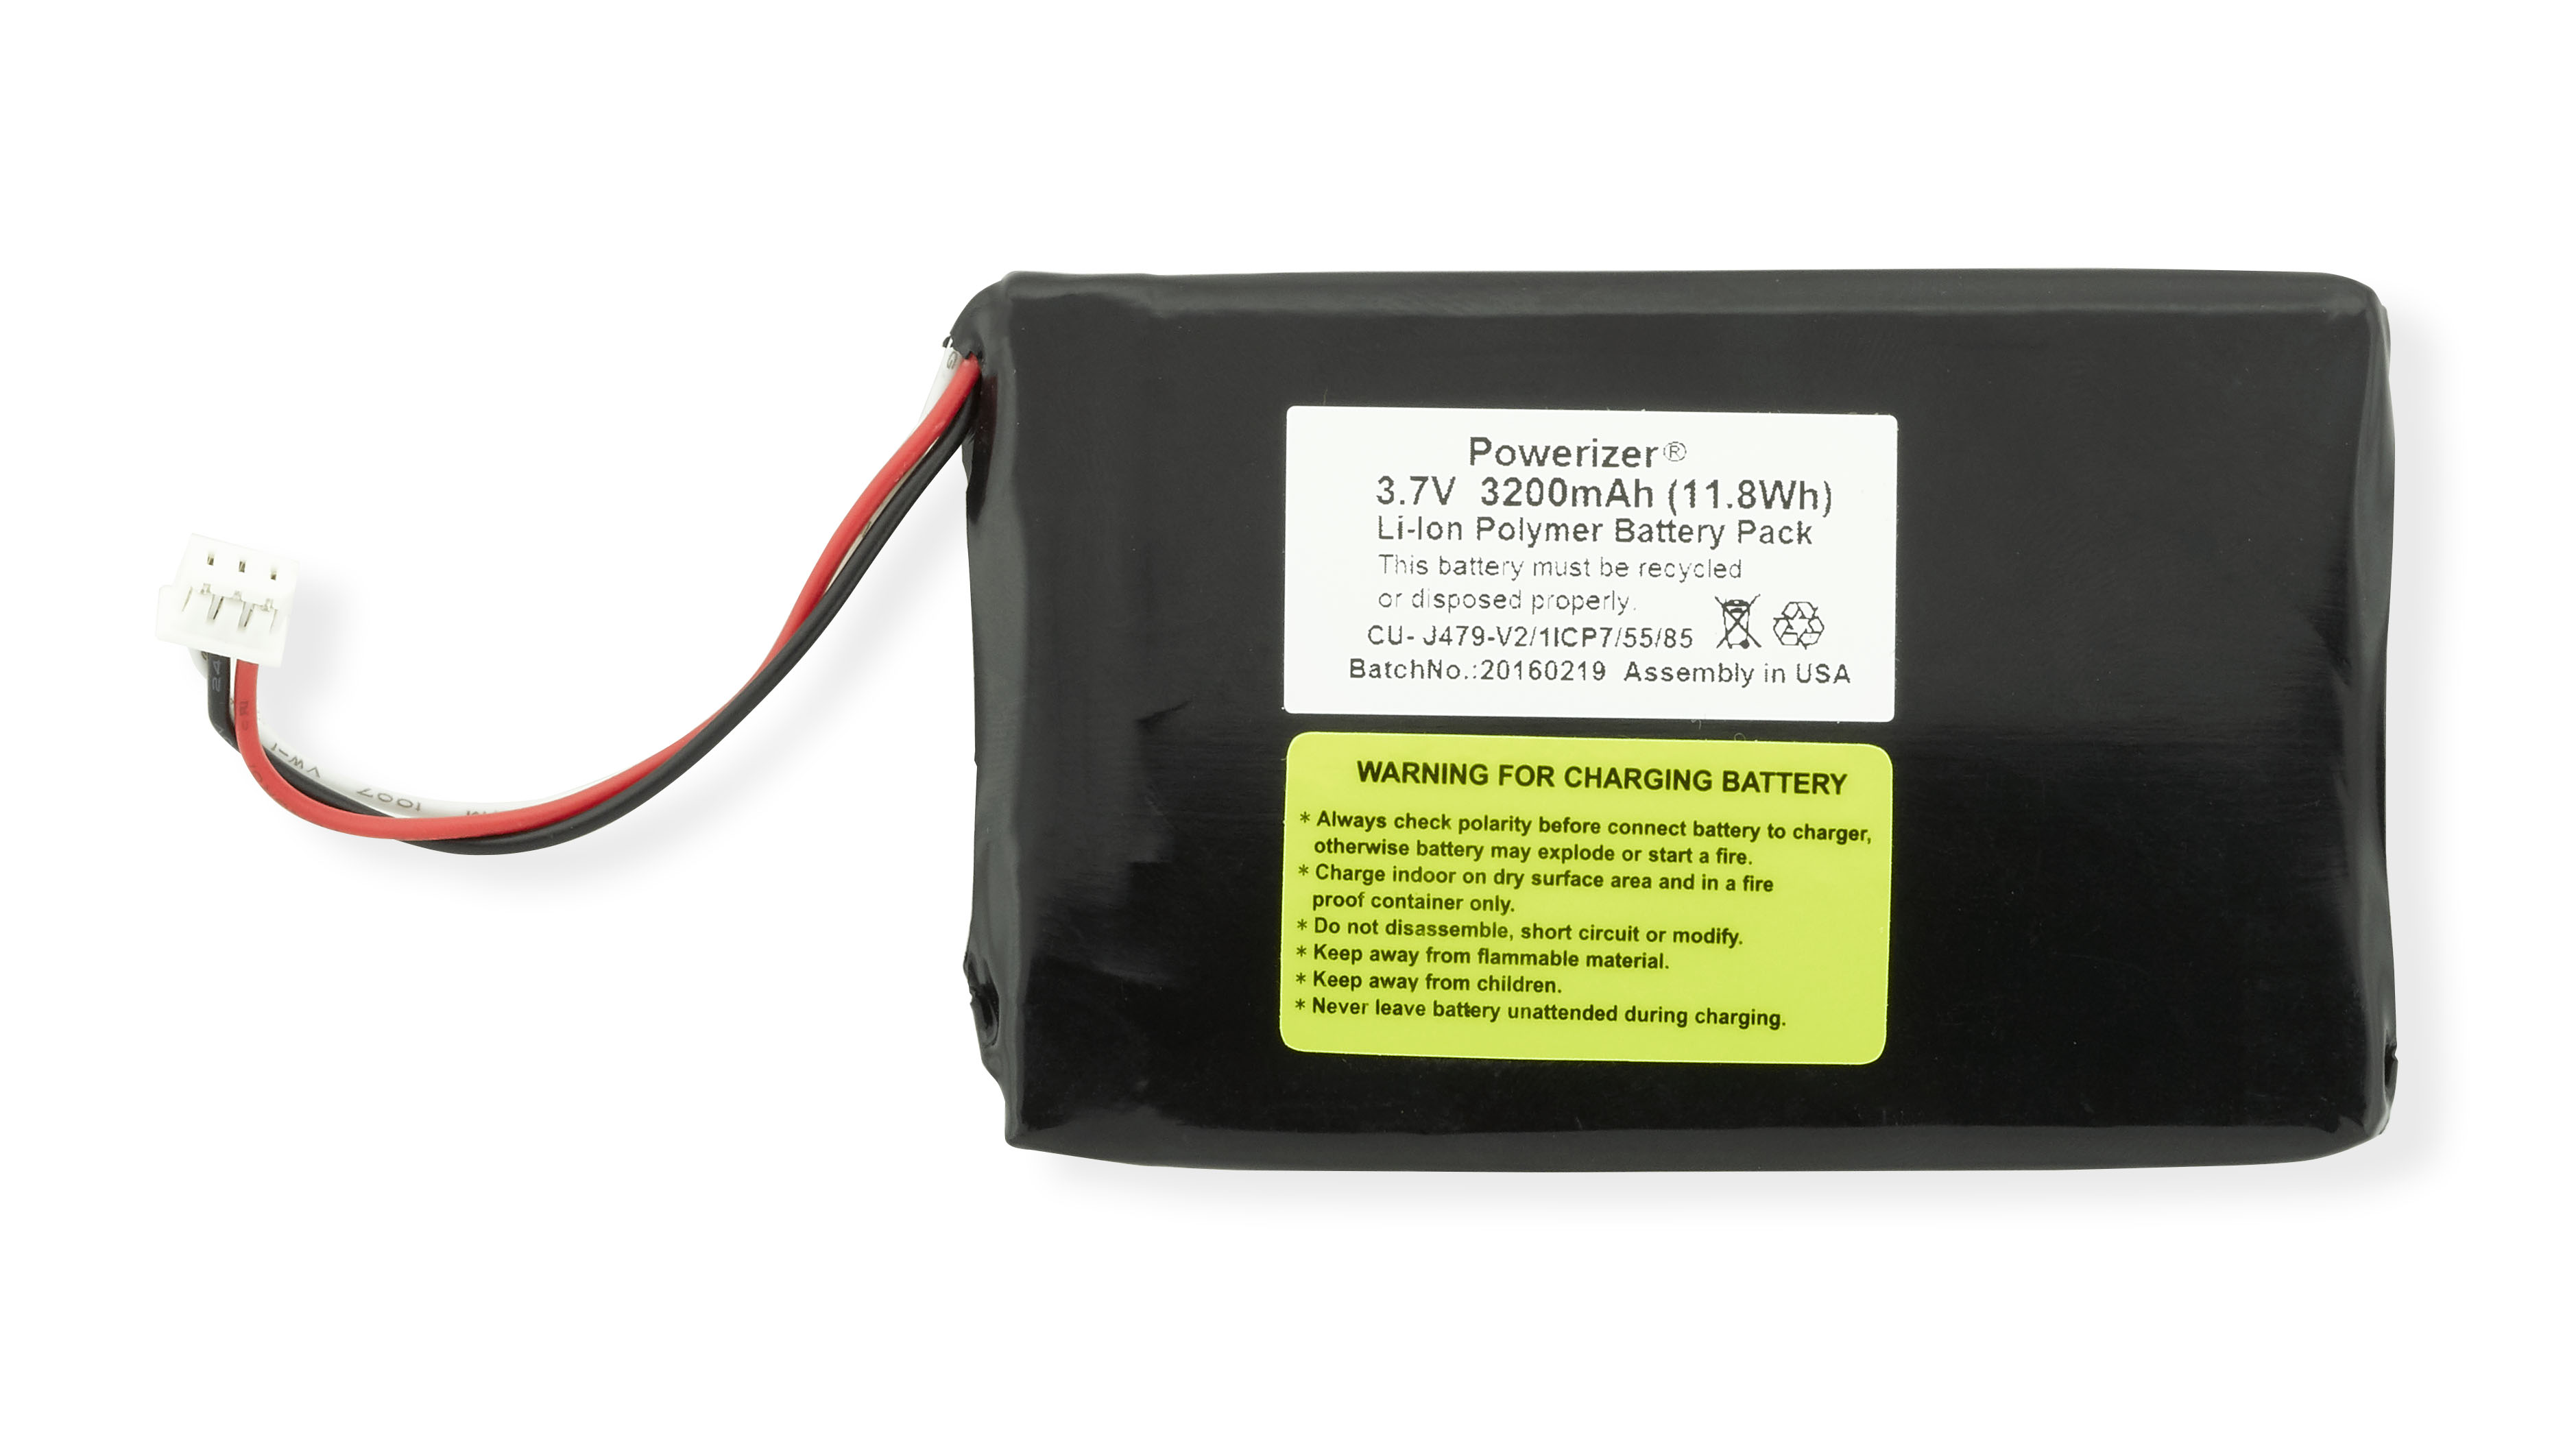 Product - Replacement Battery for USRP E312